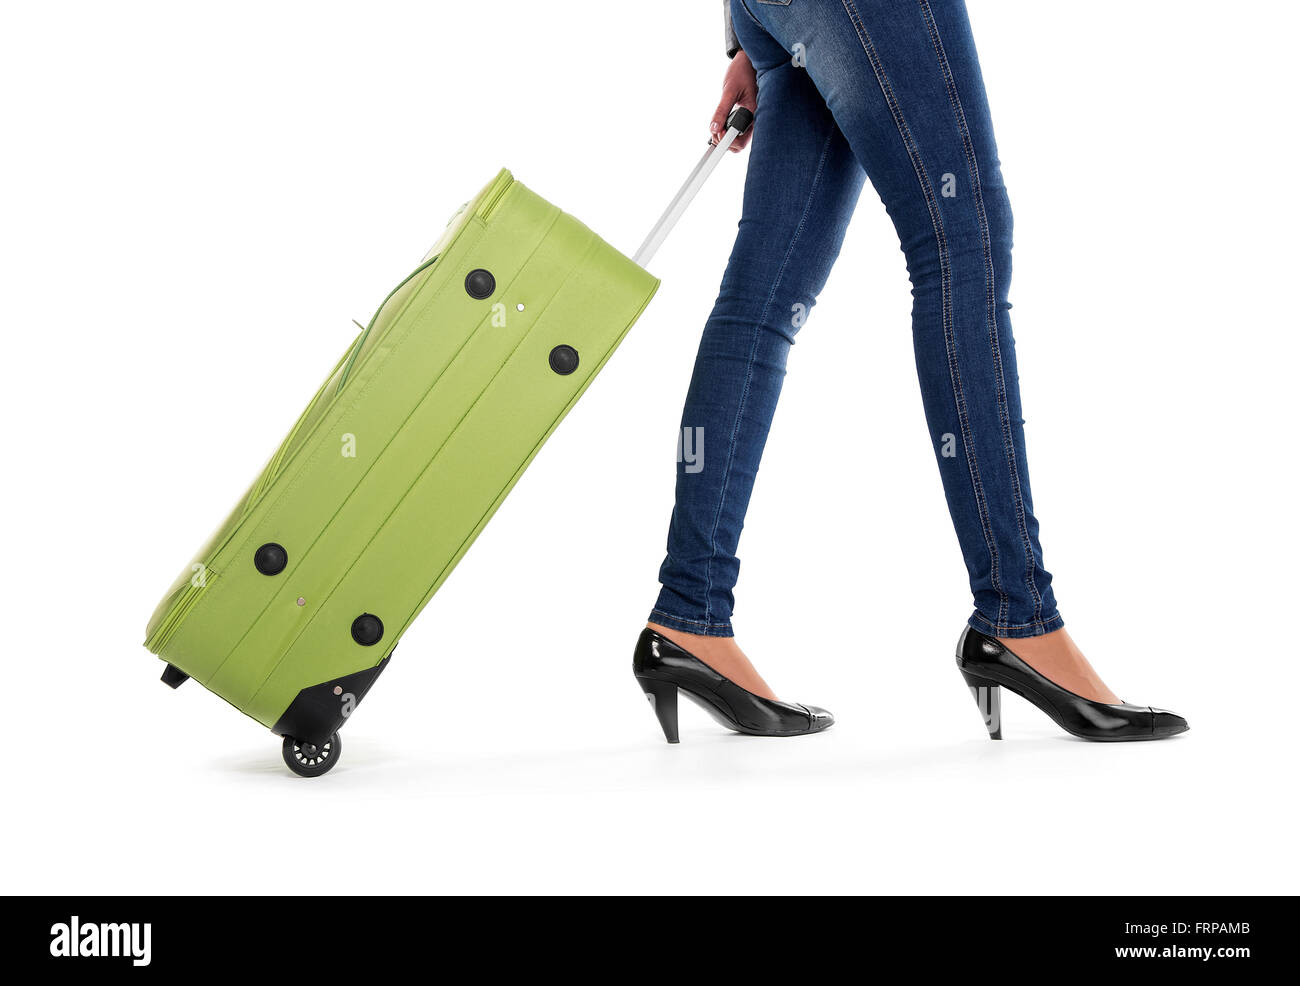 Woman with green suitcase. - Stock Image